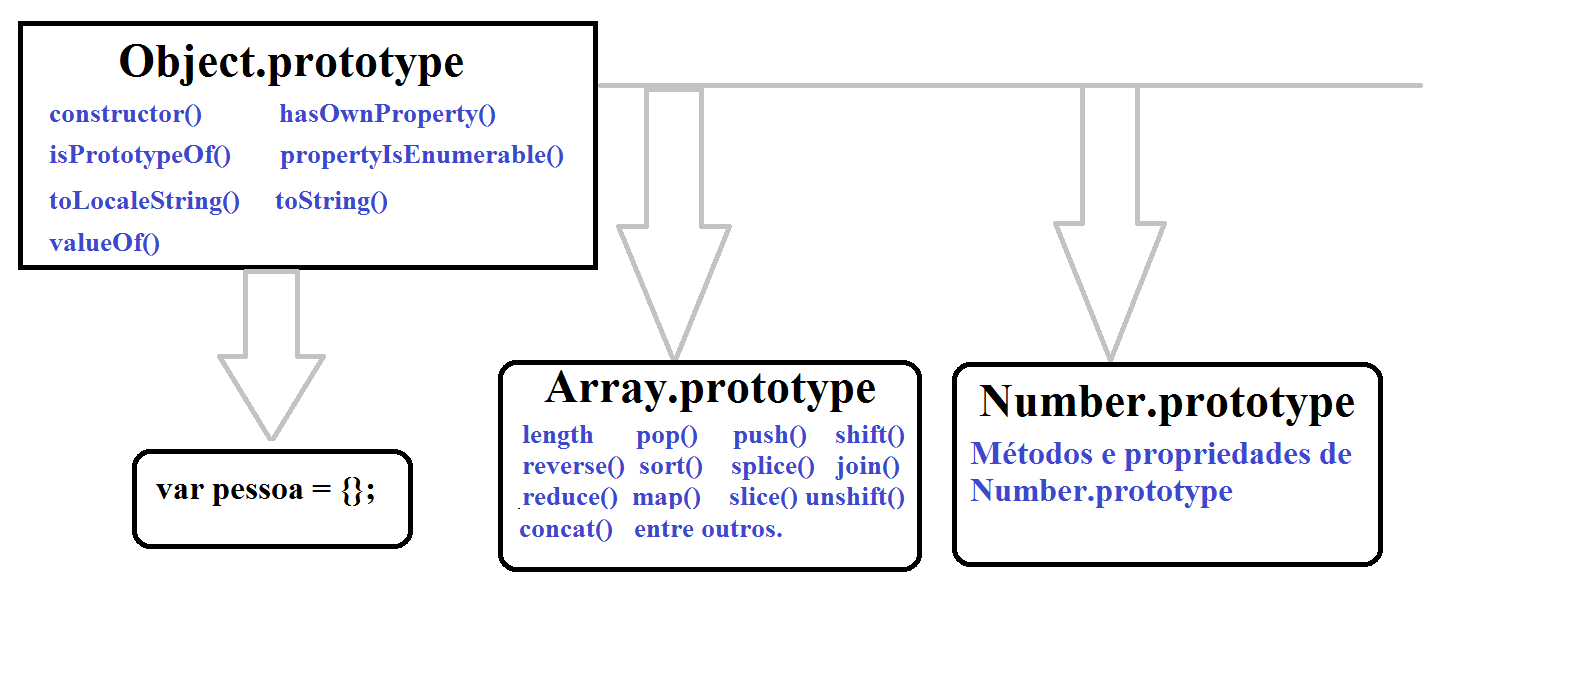 Figura 3 - Protoype chain, Object.prototype, Array.prototype.